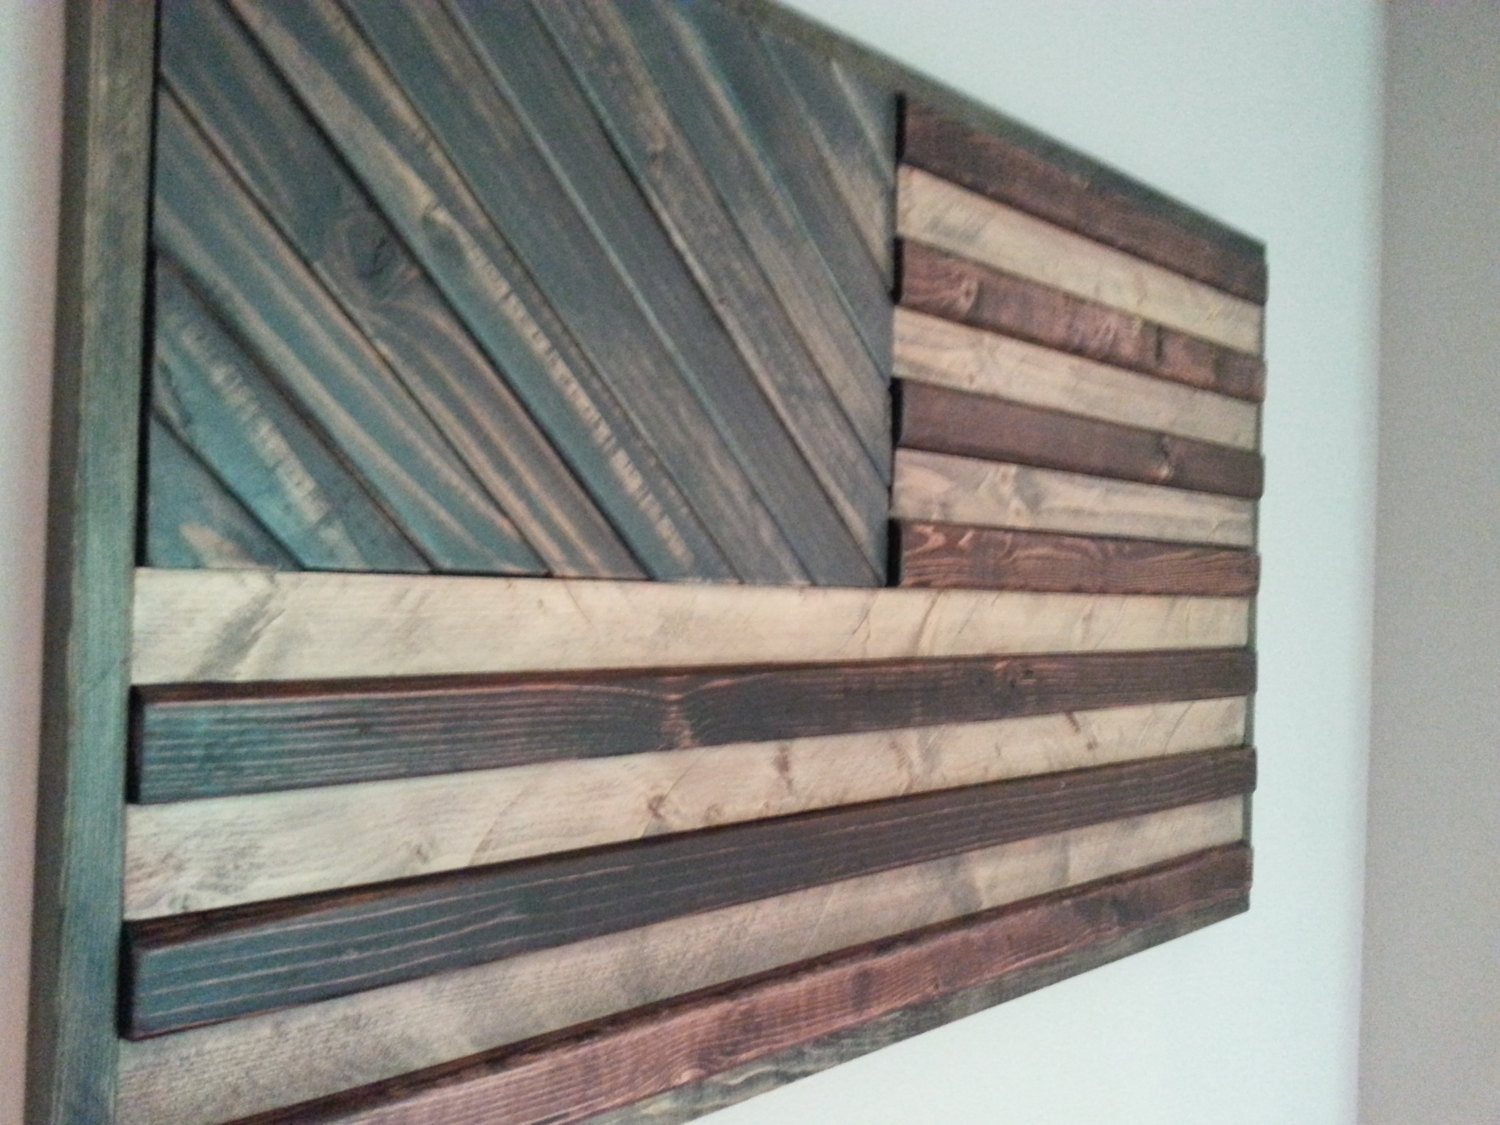 Diy Wood Wall Art Ideas Projects Pinterest Plank Arts And Crafts Regarding Most Current Wood Wall Art Diy (View 5 of 15)